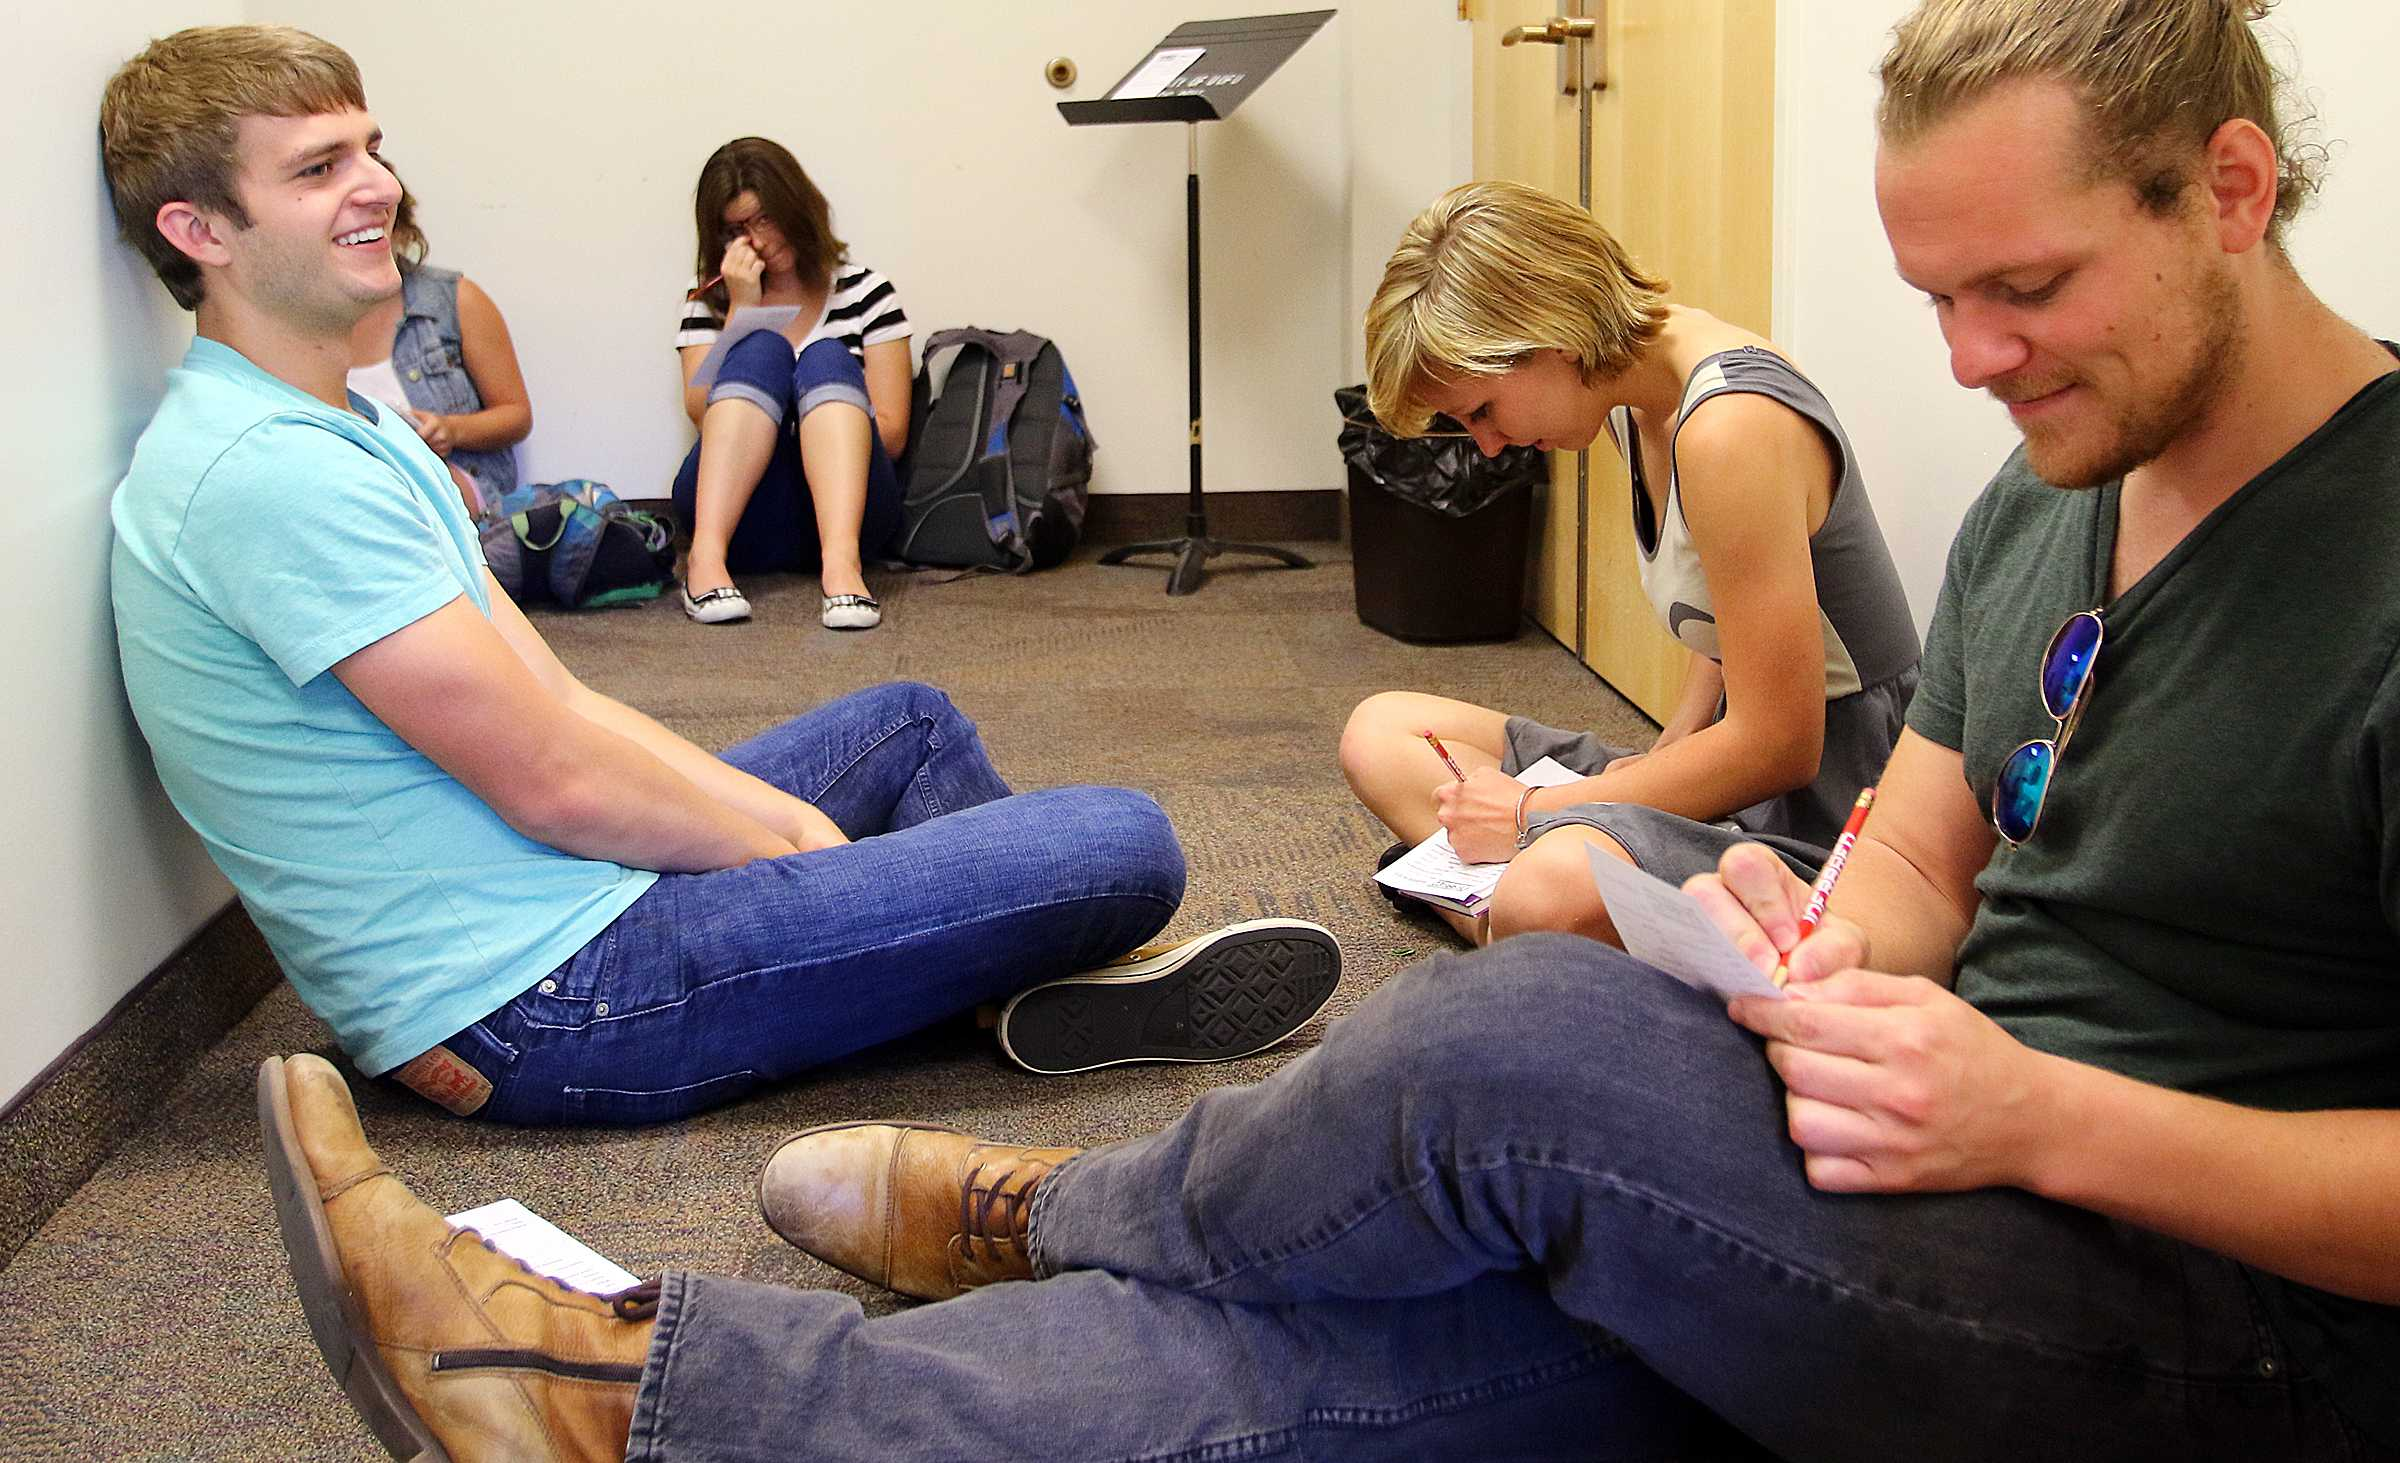 Students await their turn to audition for Infared, the U's acapella group, in Libby Gardner Hall, Friday, August 28, 2015.